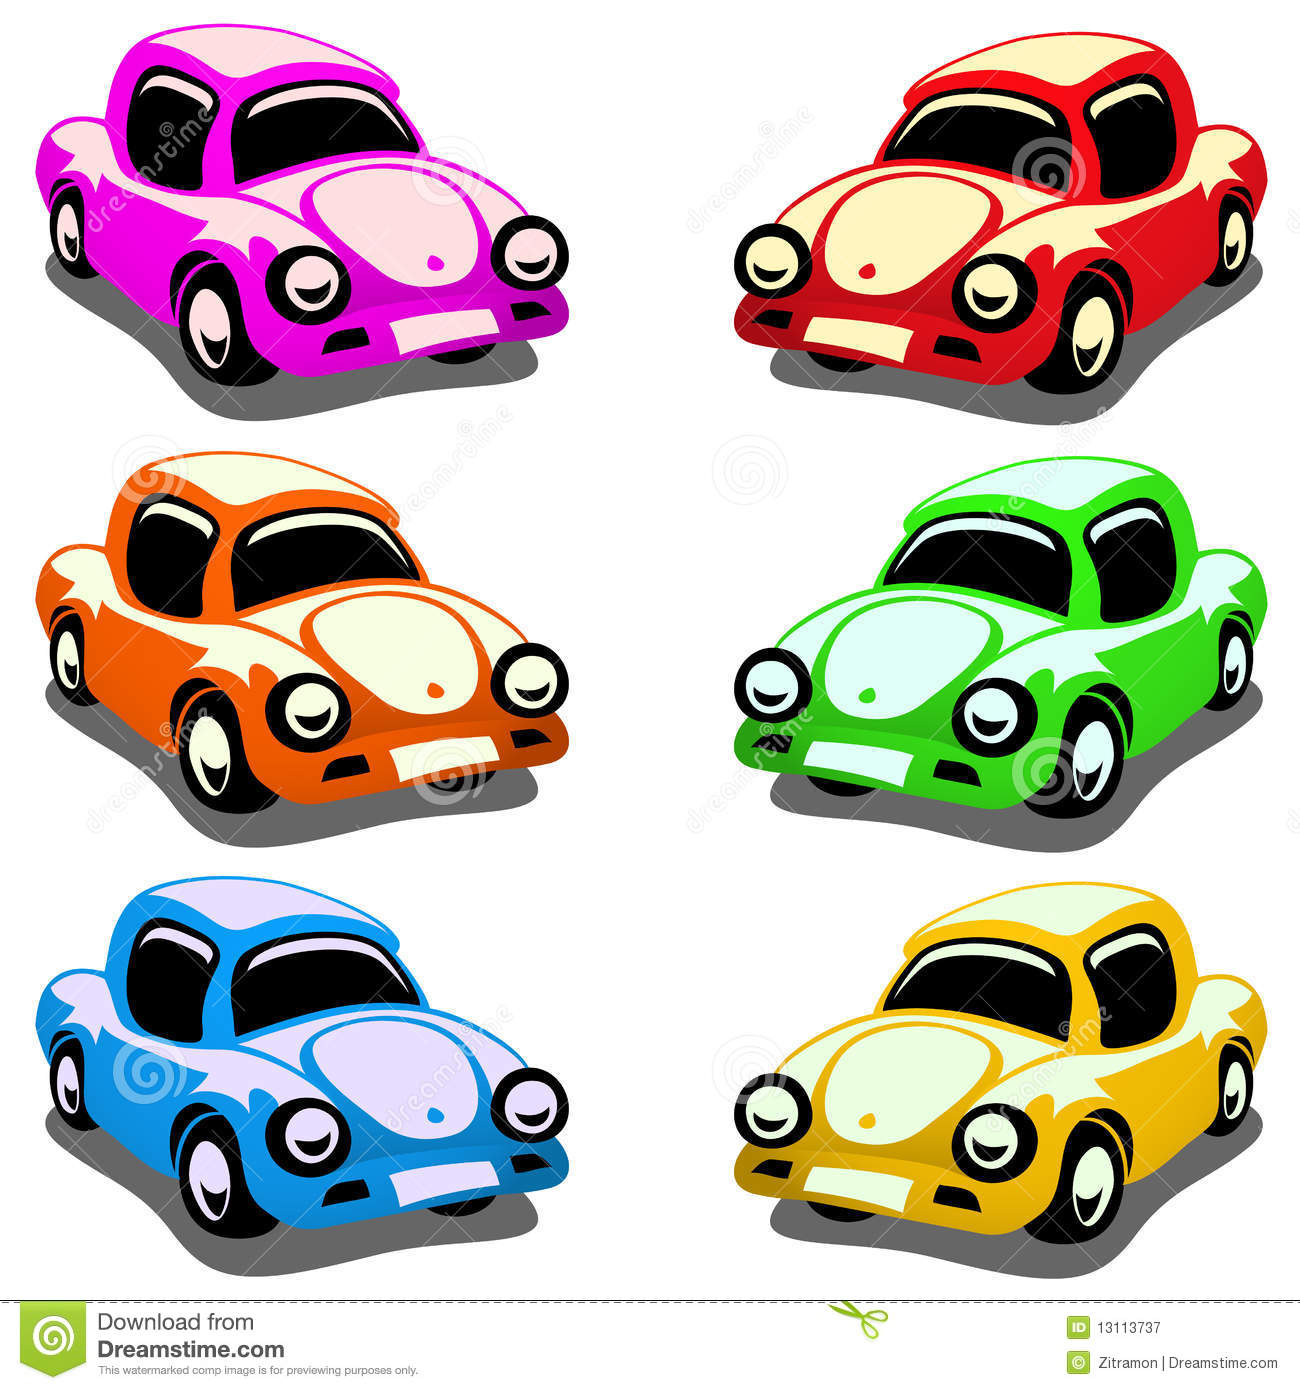 Toy Car Clip Art : Toy cars stock vector illustration of collection